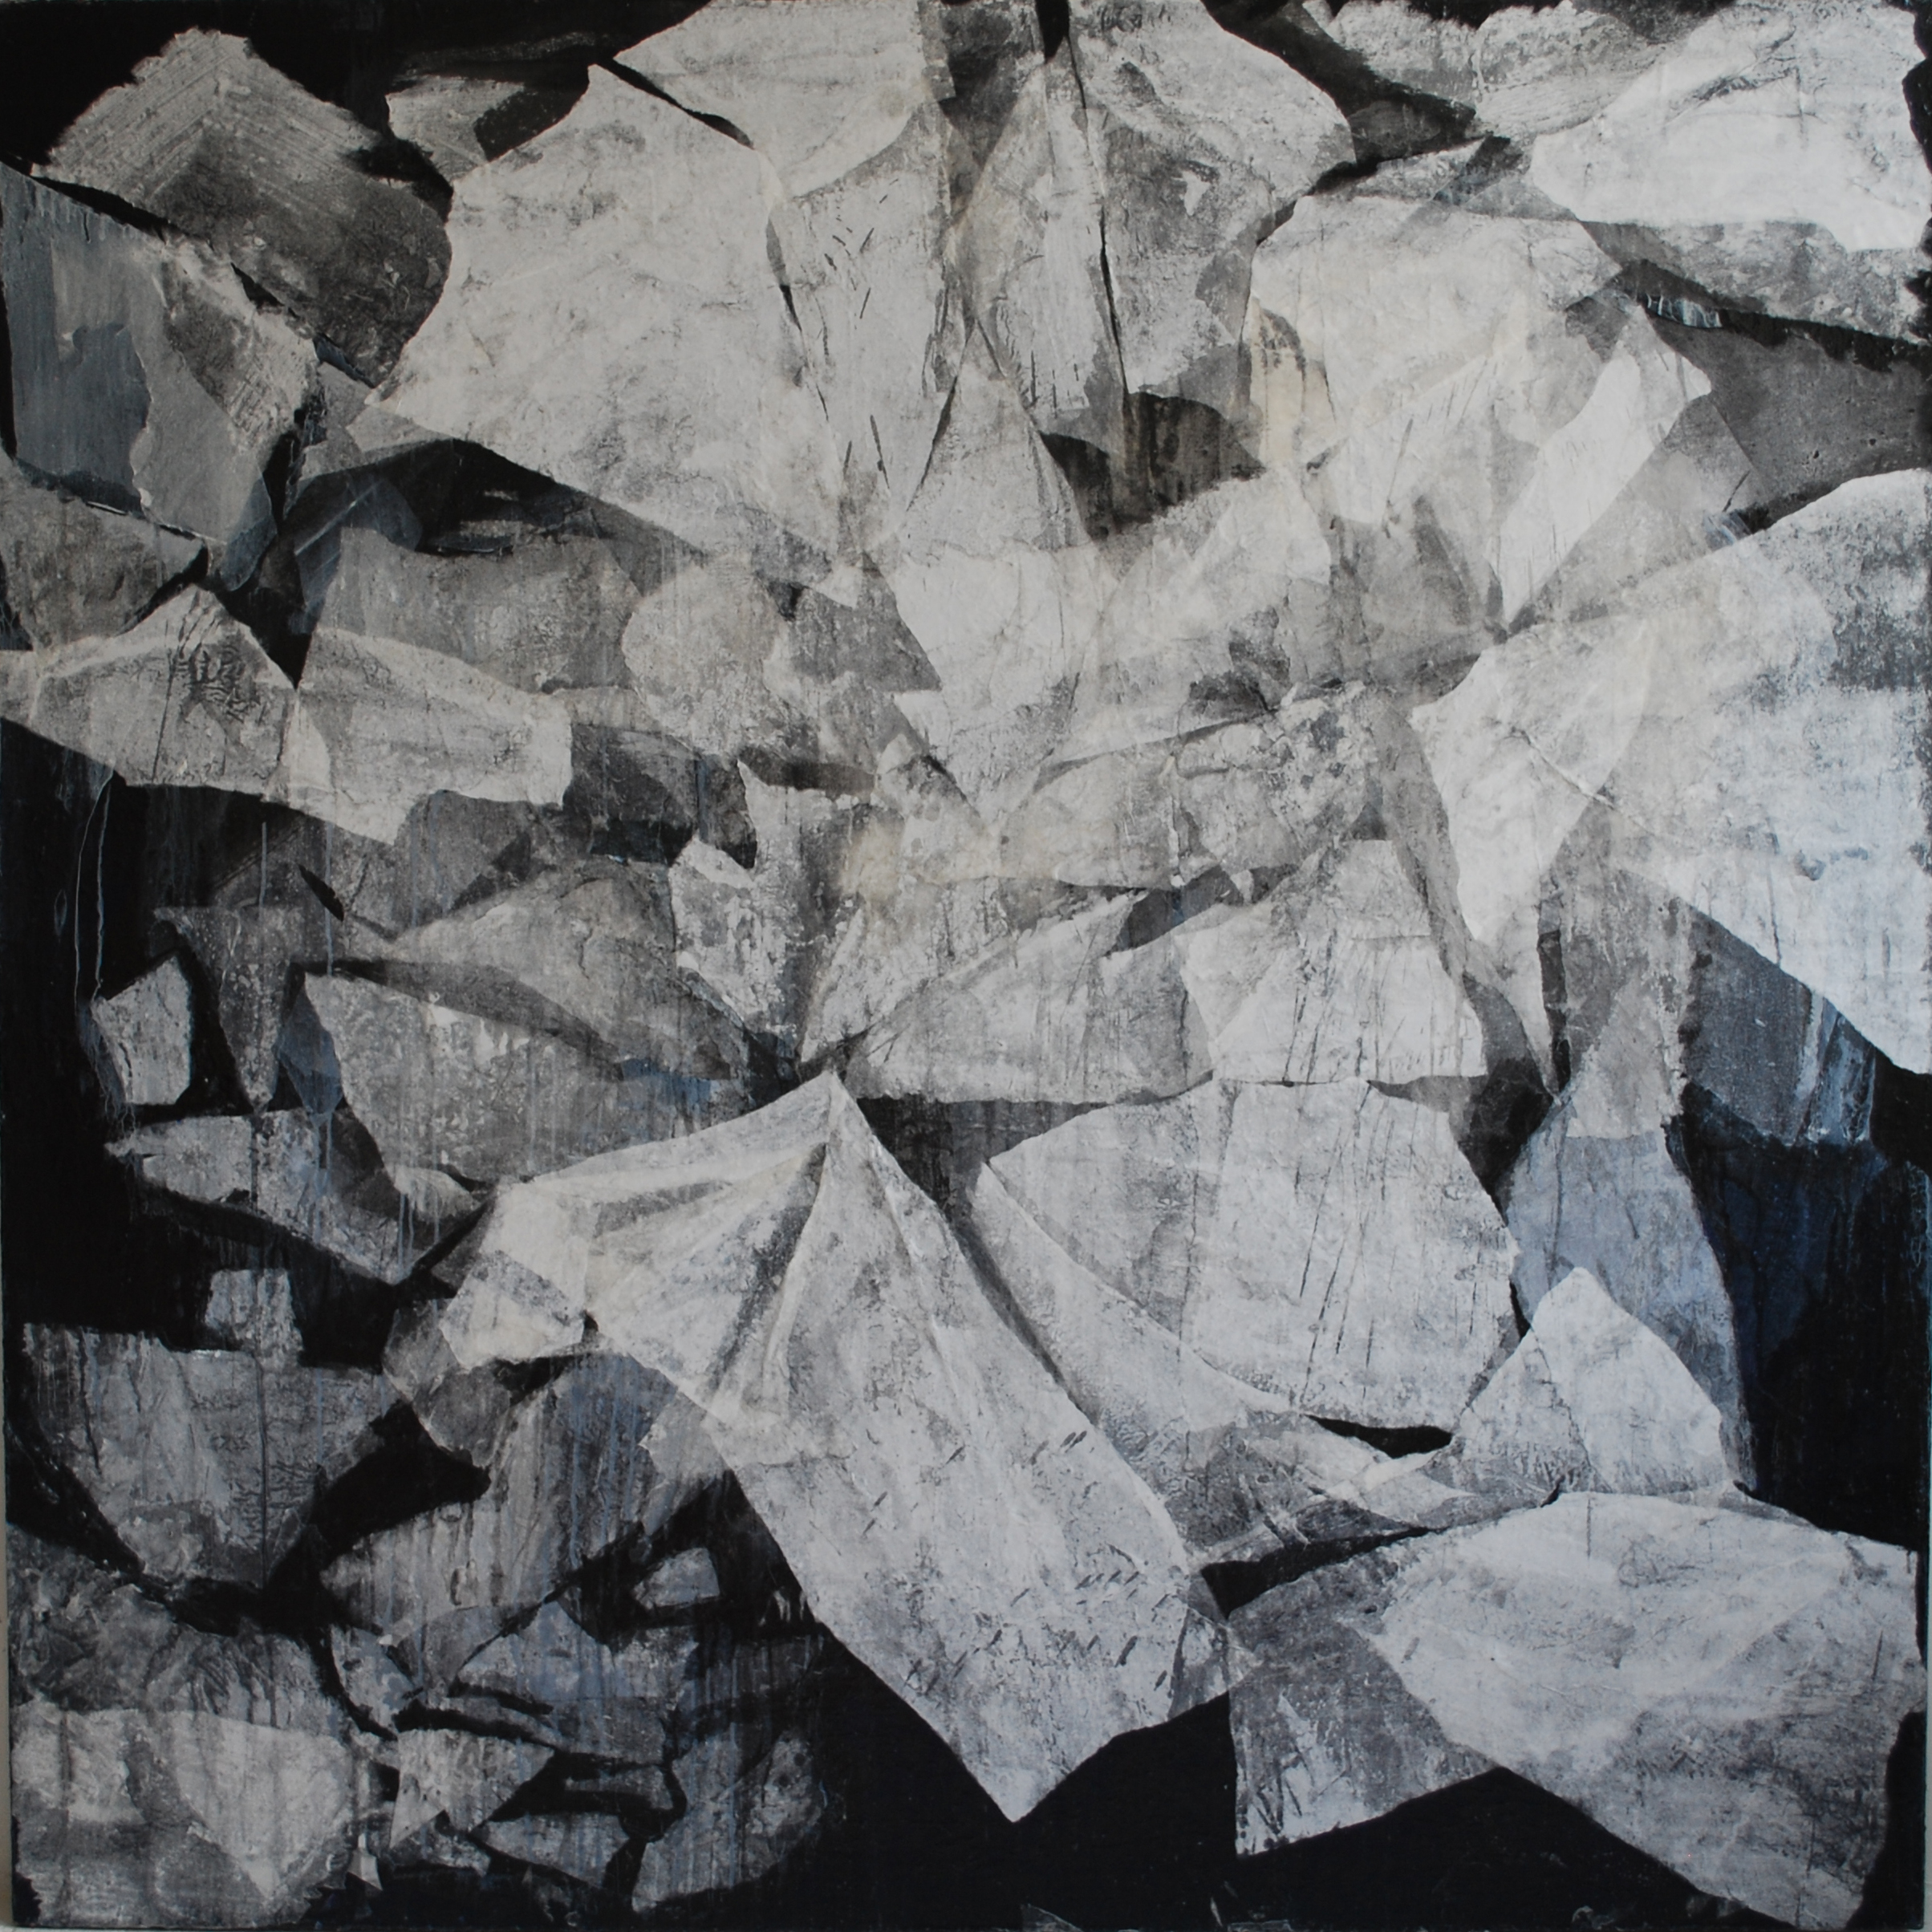 SoHyun Bae, Wrapped Shards #1, 2002, rice-paper and pure pigment on canvas, 81 x81 inches